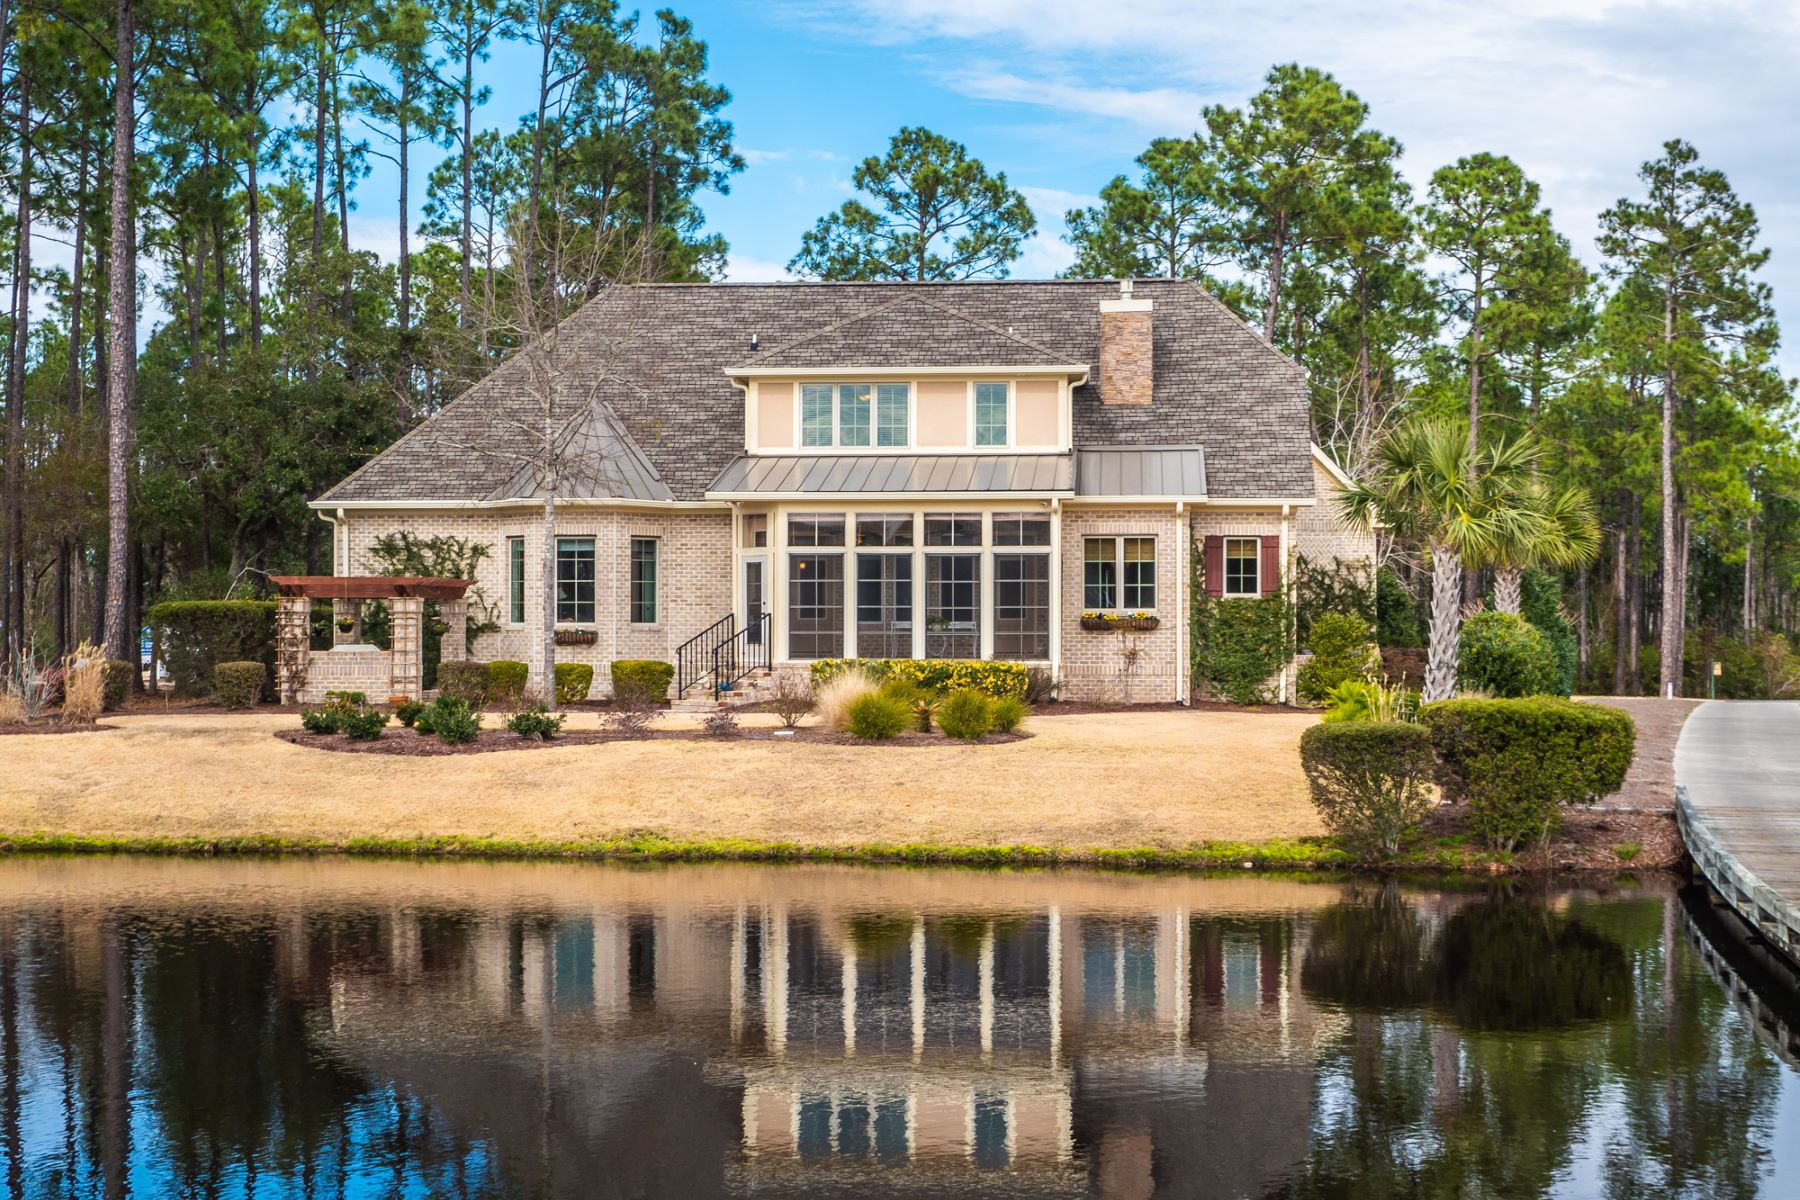 Single Family Home for Active at Purposefully designed home in prestigious community 3196 Moss Hammock Wynd Southport, North Carolina 28461 United States